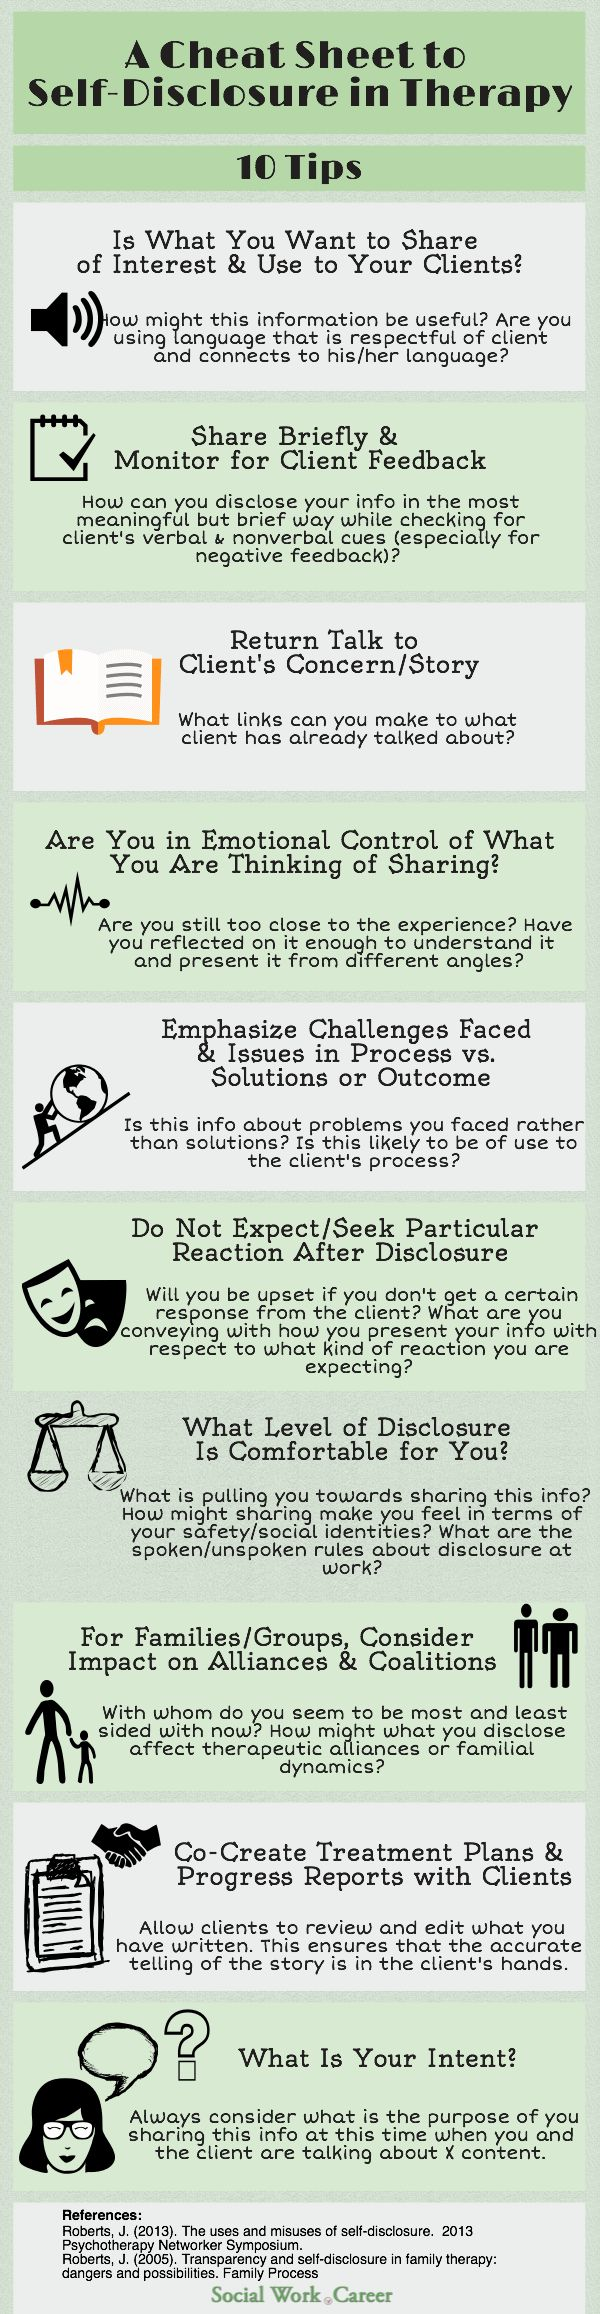 The Art of Self-Disclosure in Therapy < how to decide how much (or how little) to share; it's very tricky.